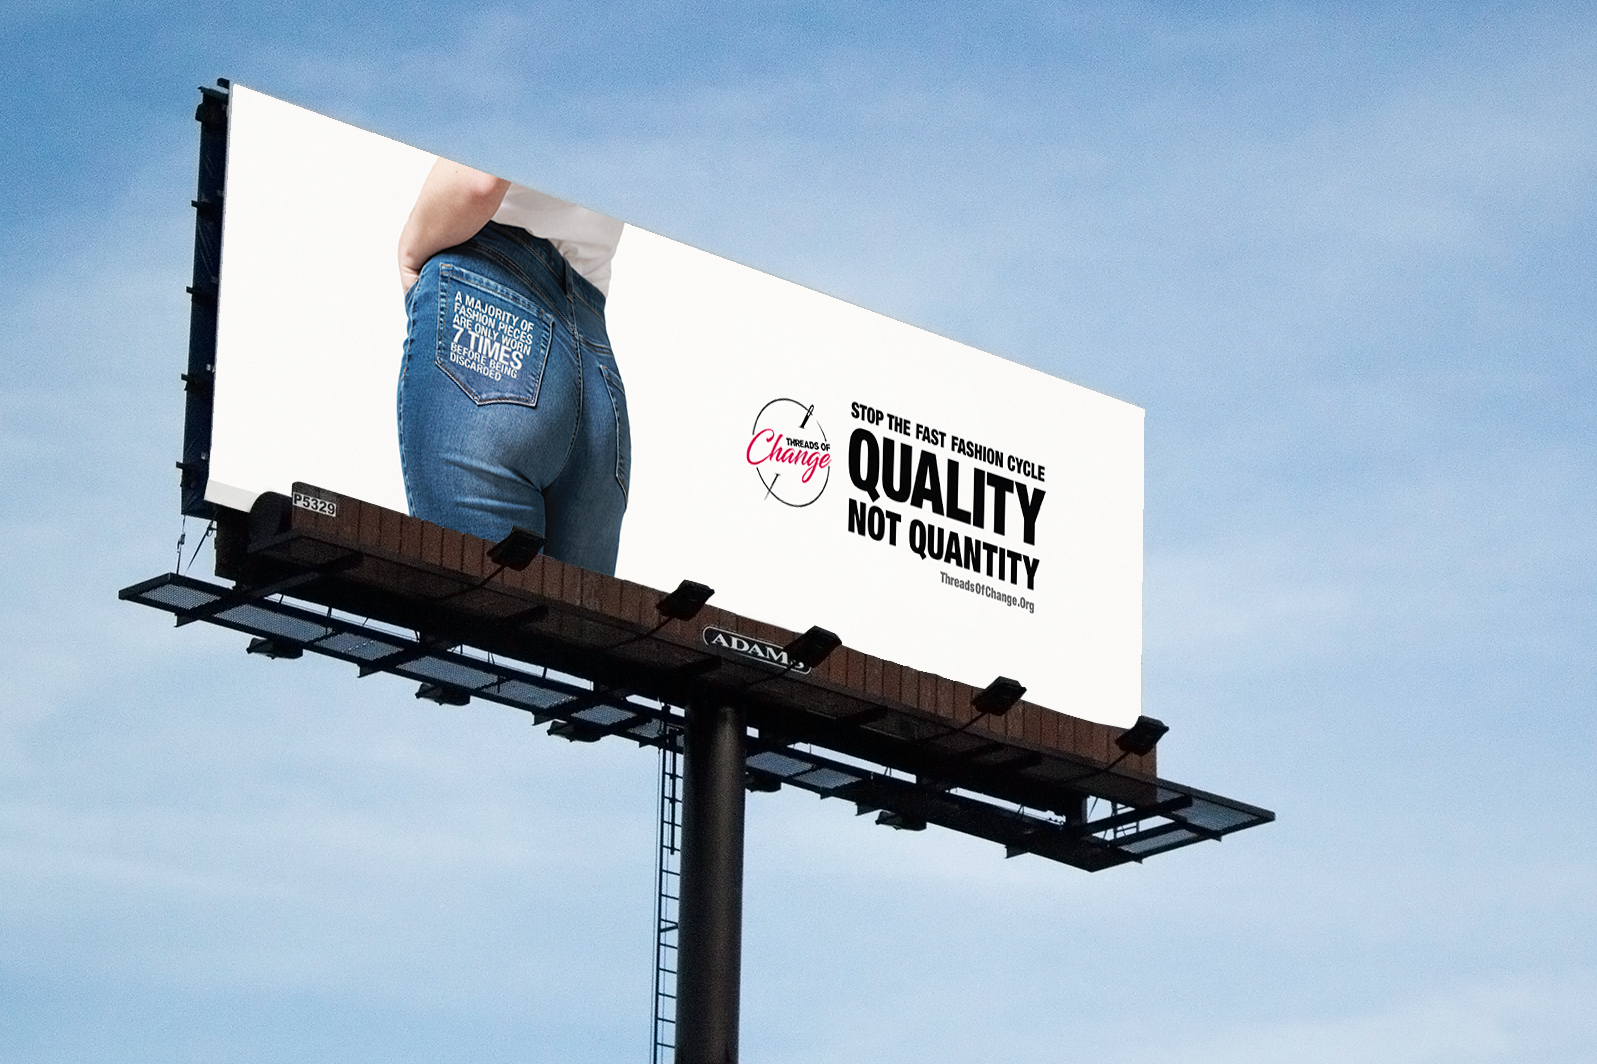 Billboard Mockup_crop.jpg